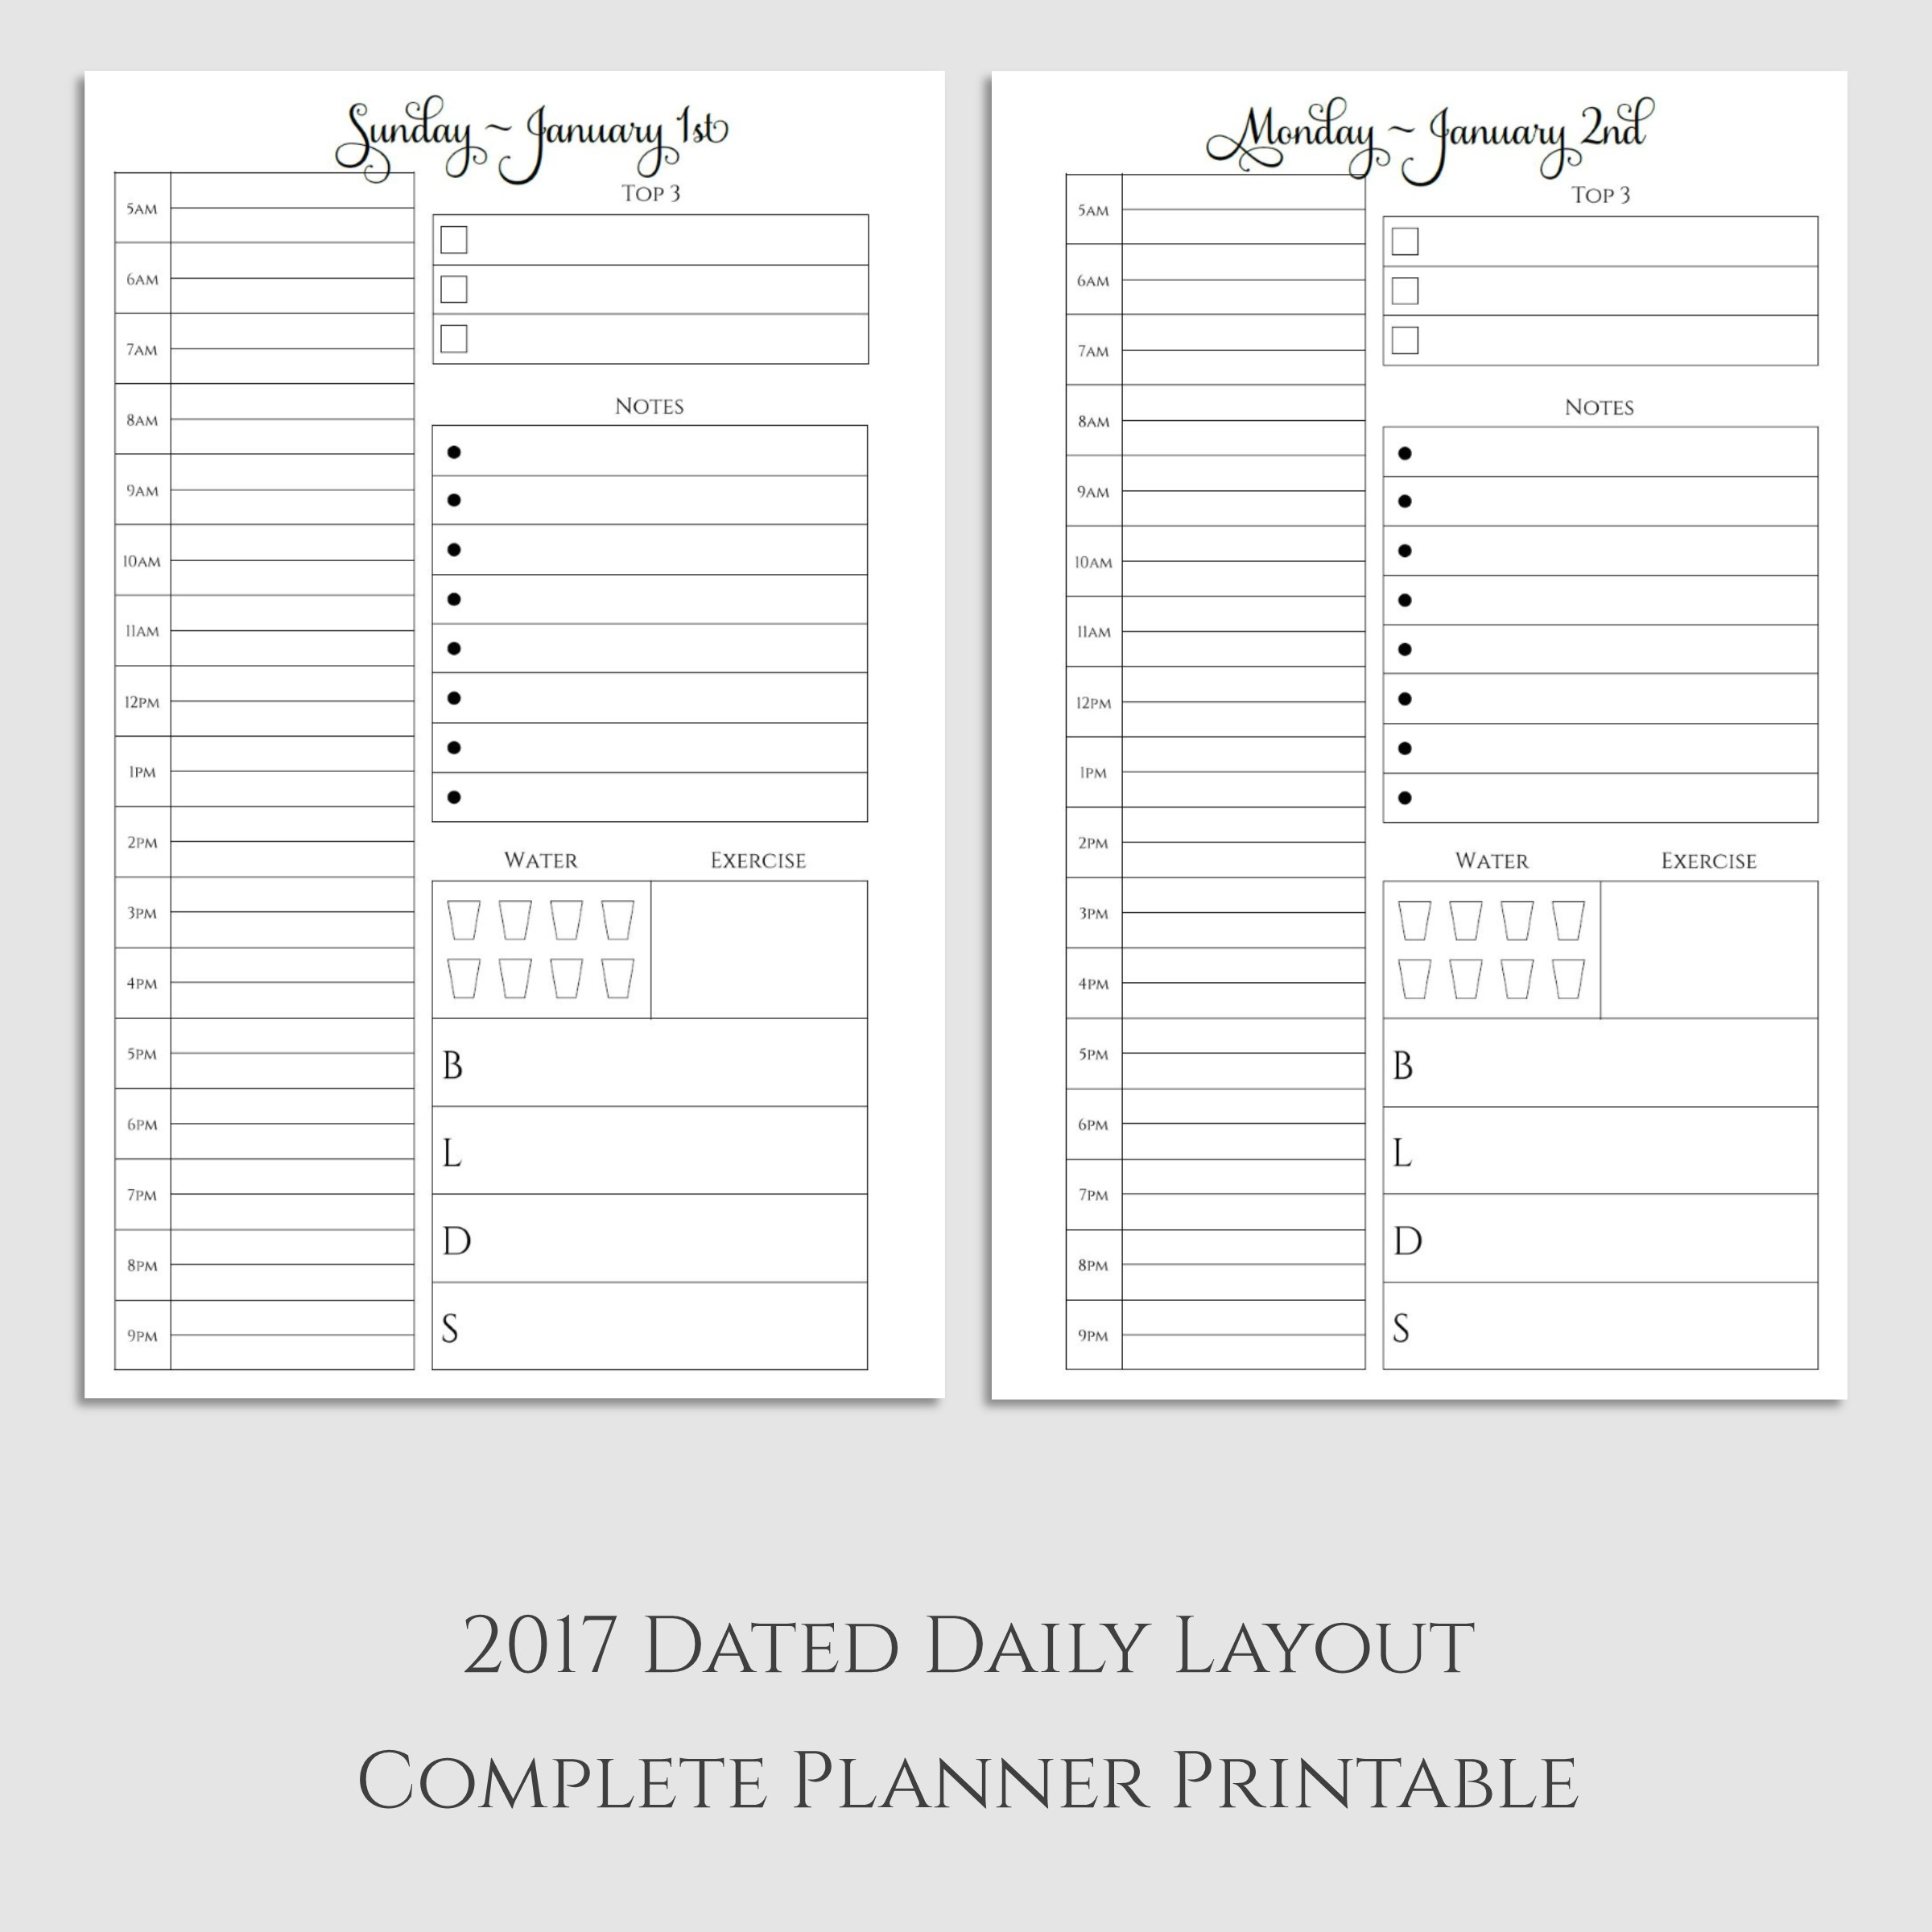 Complete 2017 Daily Planner Printable with Habit Tracker